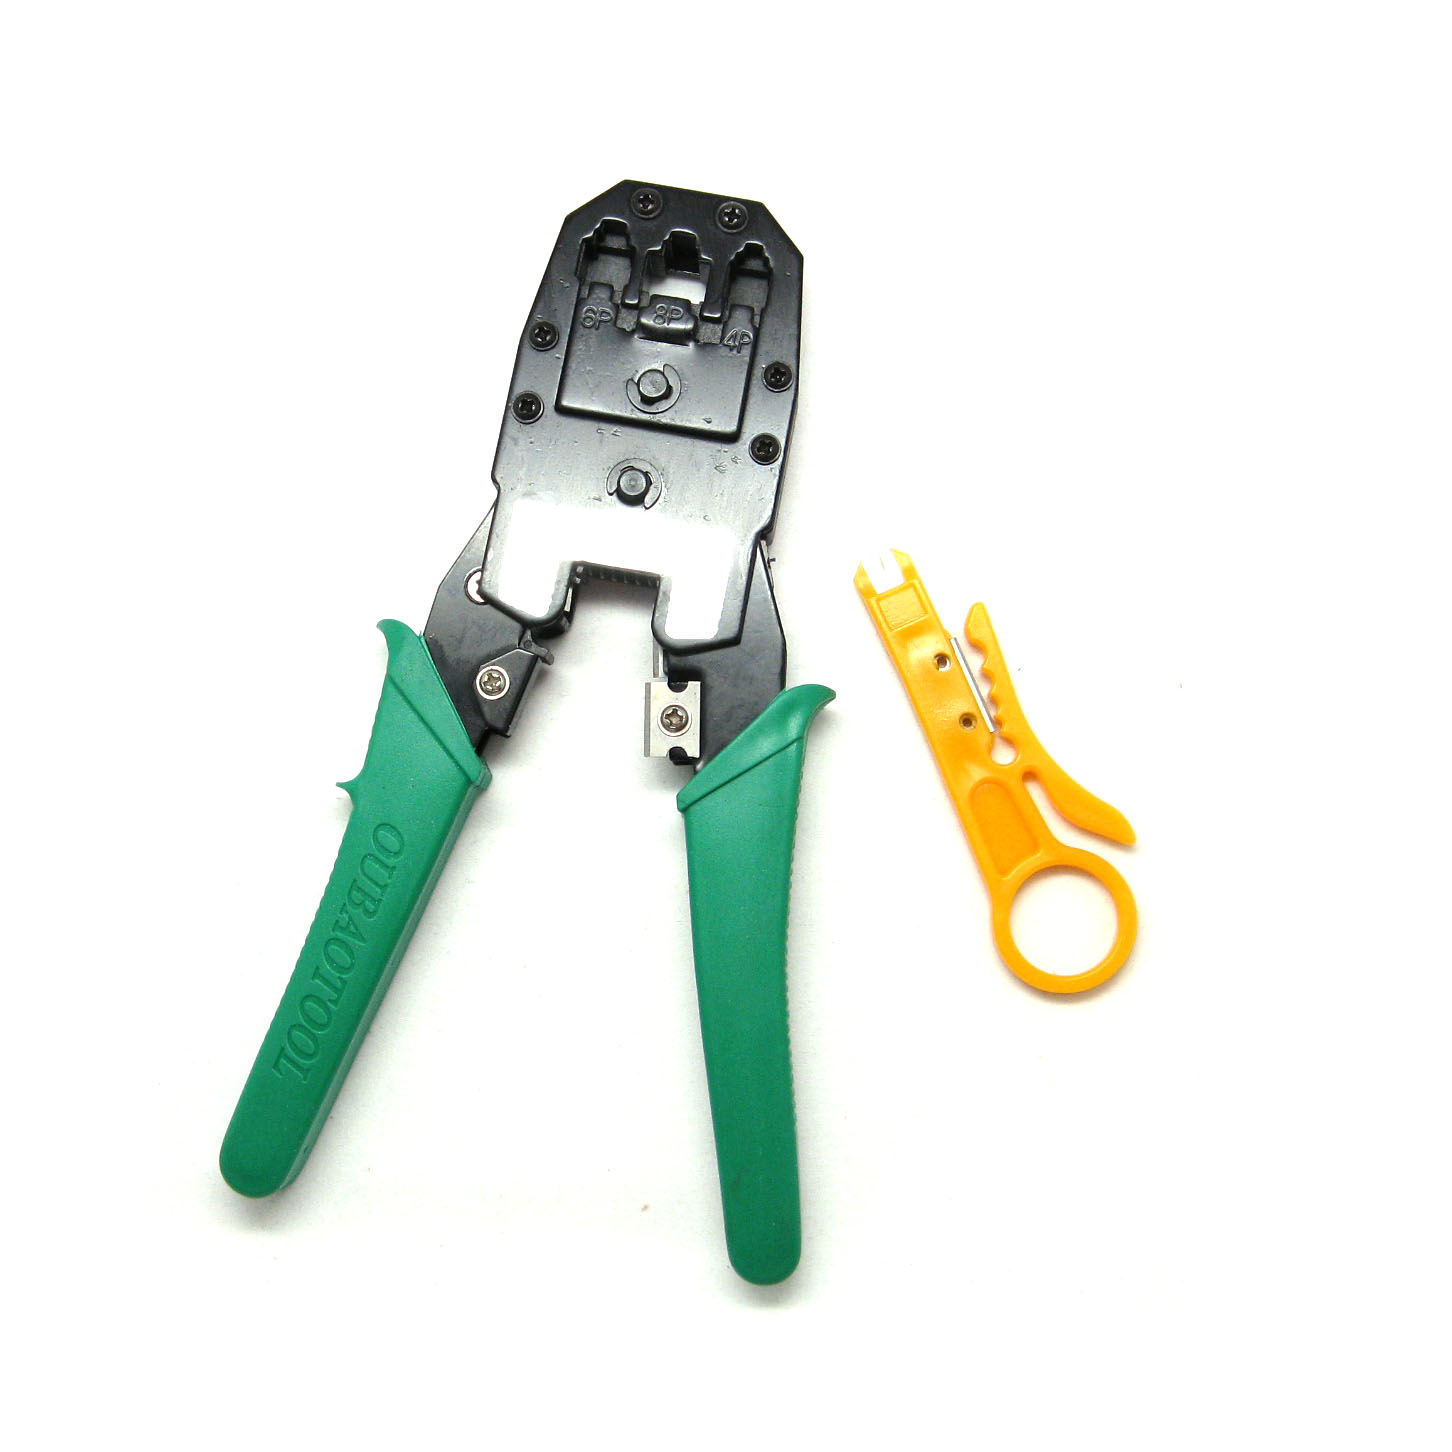 IMG_4444 KS - 315 Multipurpose Cable Crimp / Stripper / Cutting Tool for RJ45/RJ11/RJ12